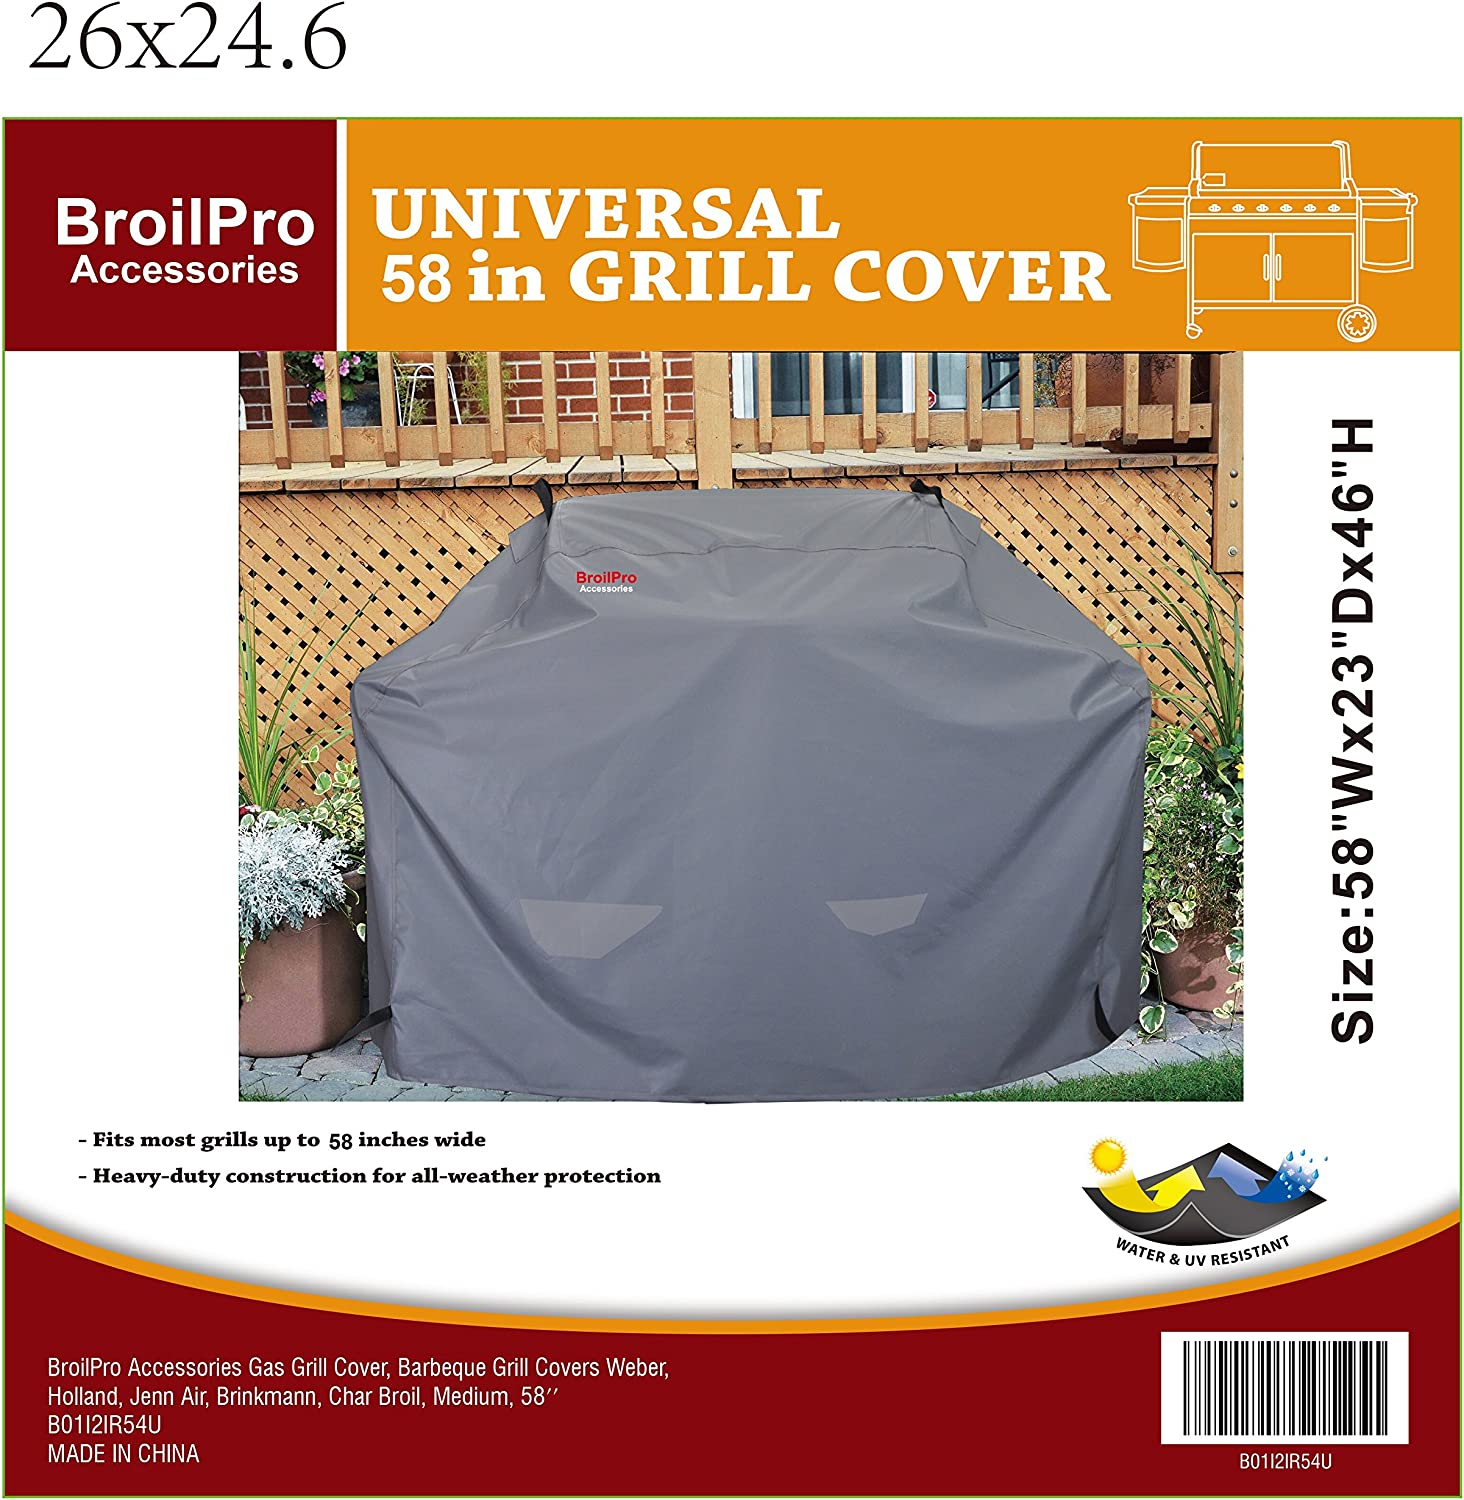 BroilPro Accessories Gas Grill Cover, Barbeque Grill Covers Weber, Holland, Jenn Air, Brinkman, Char Broil, Medium : Garden & Outdoor